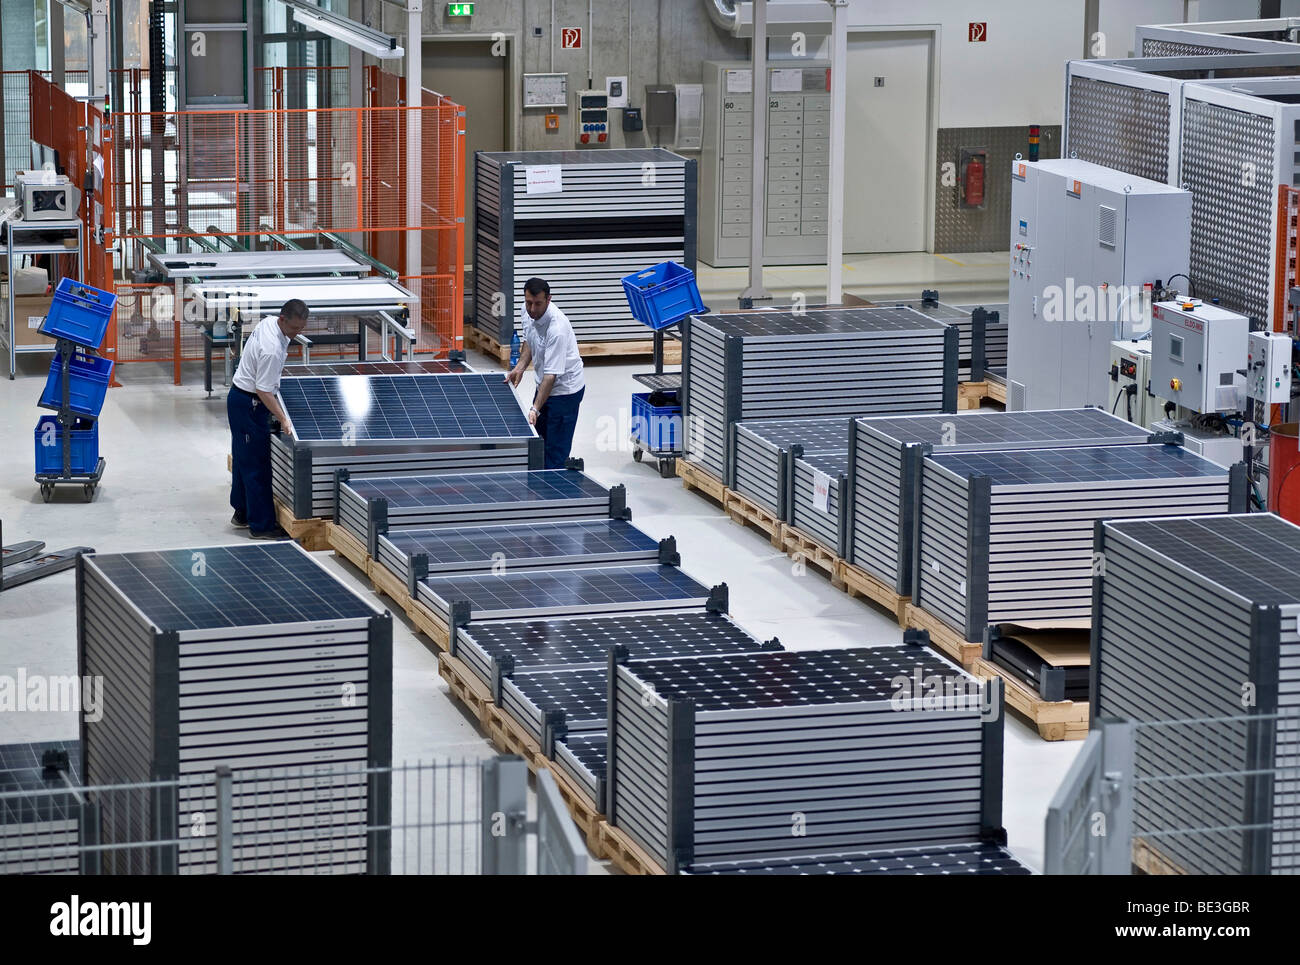 Storage, production of solar modules at SOLON SE, Berlin-Adlershof, Germany, Europe - Stock Image